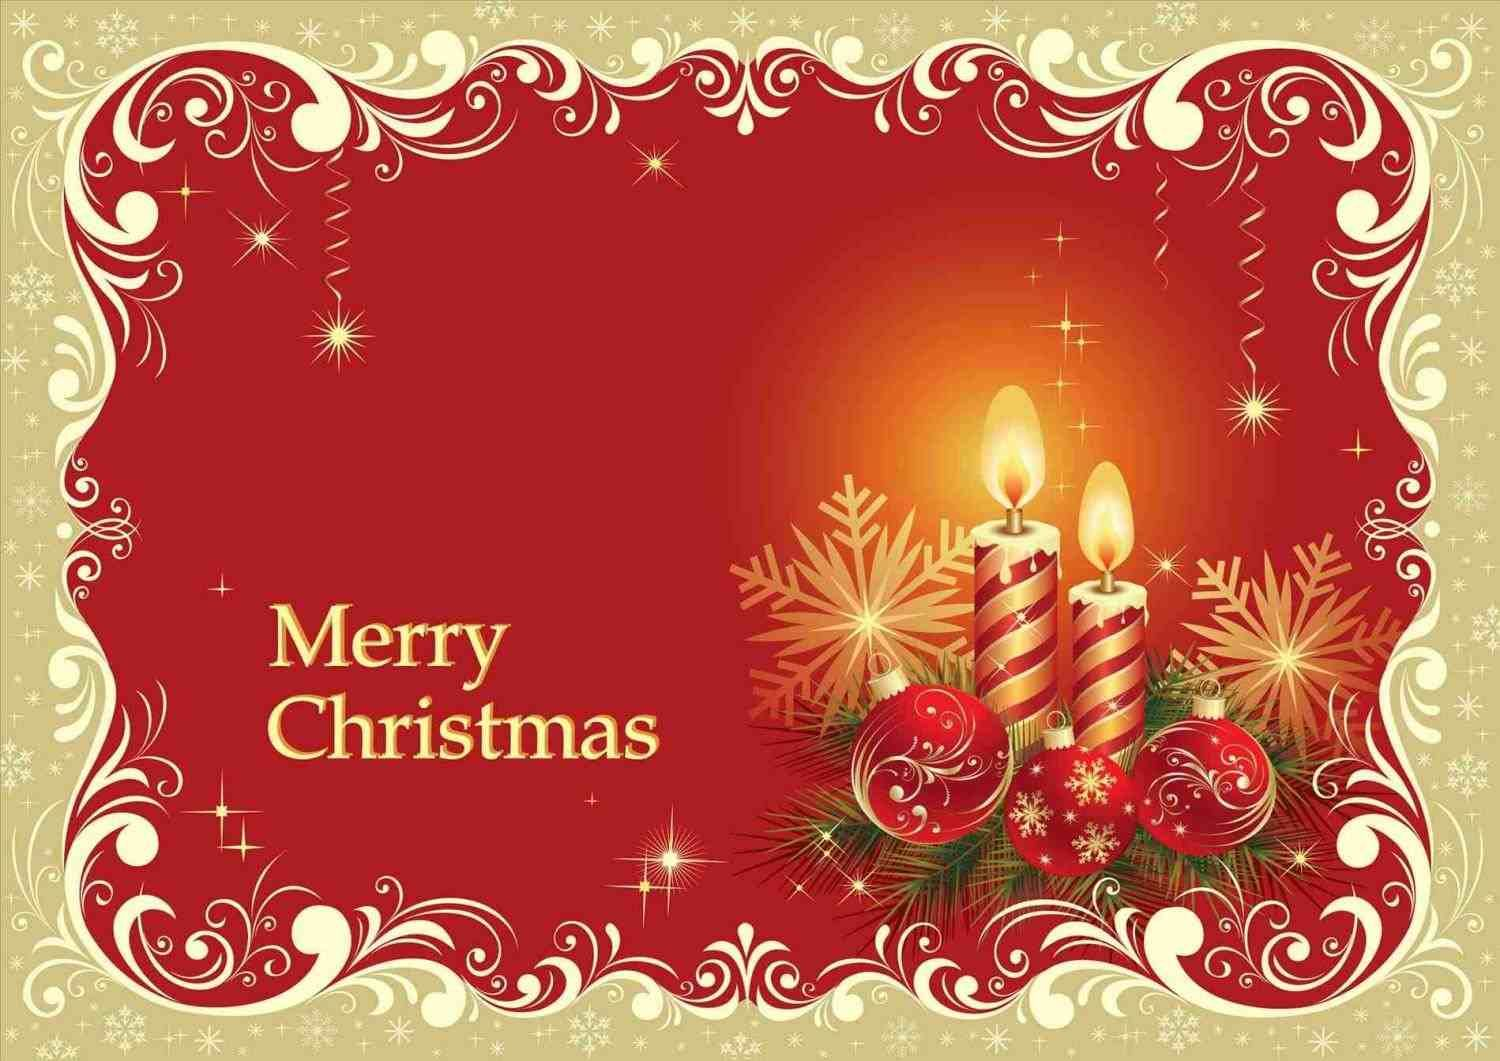 New Post Religious Christmas Greeting Cards Xmast Pinterest